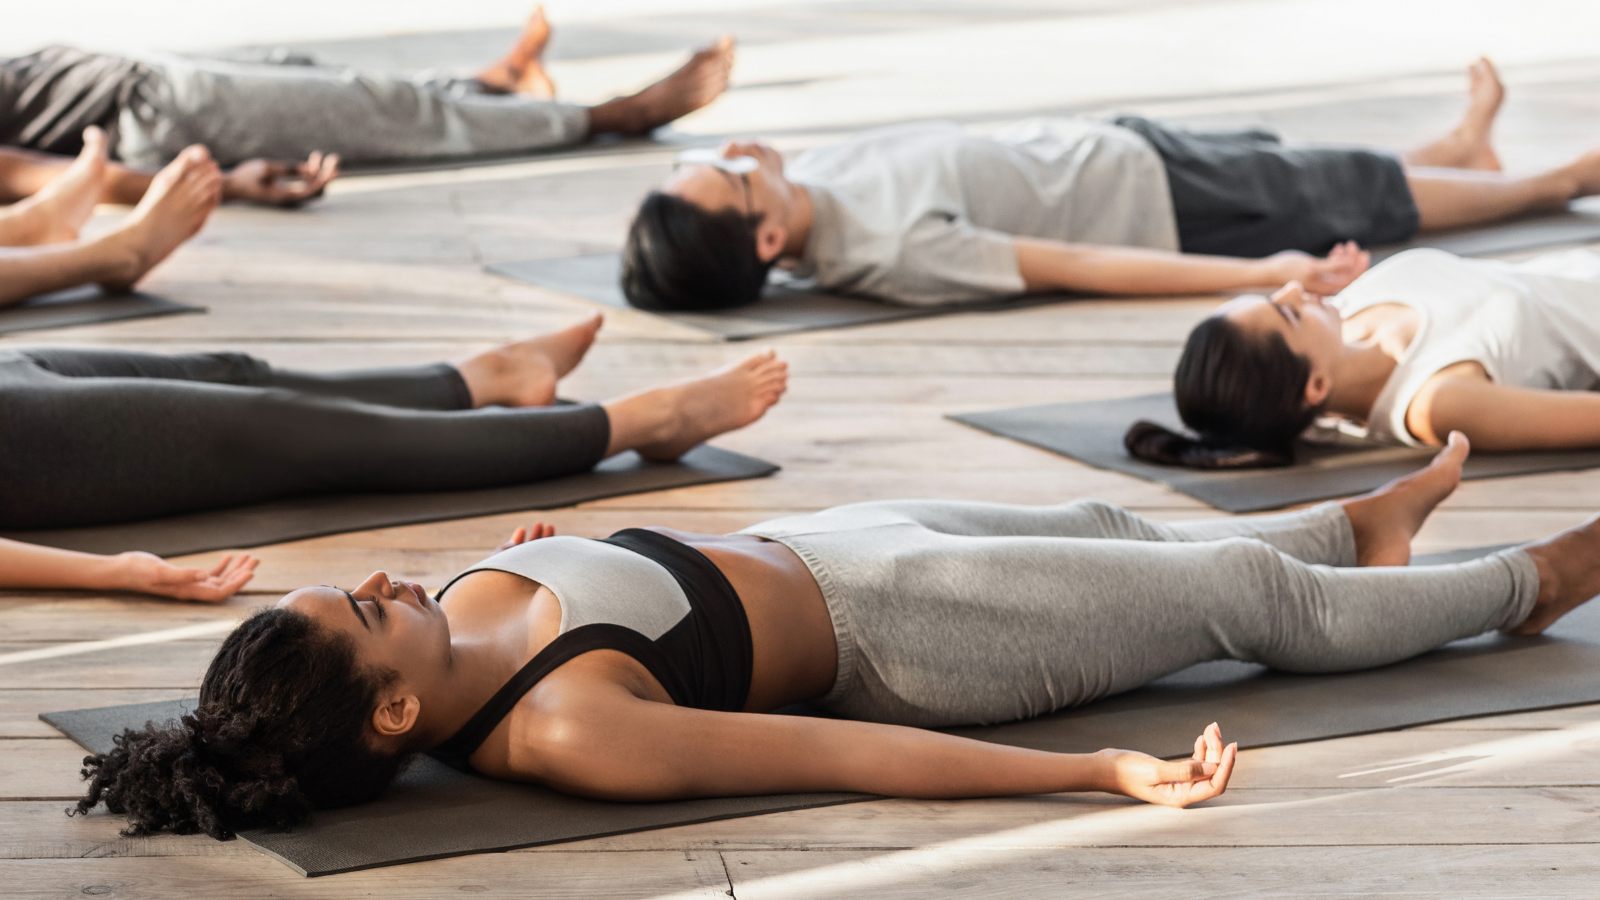 Yoga tips to practice Relaxation Pose (Savasana) to reduce tension and stress that causes tension headaches